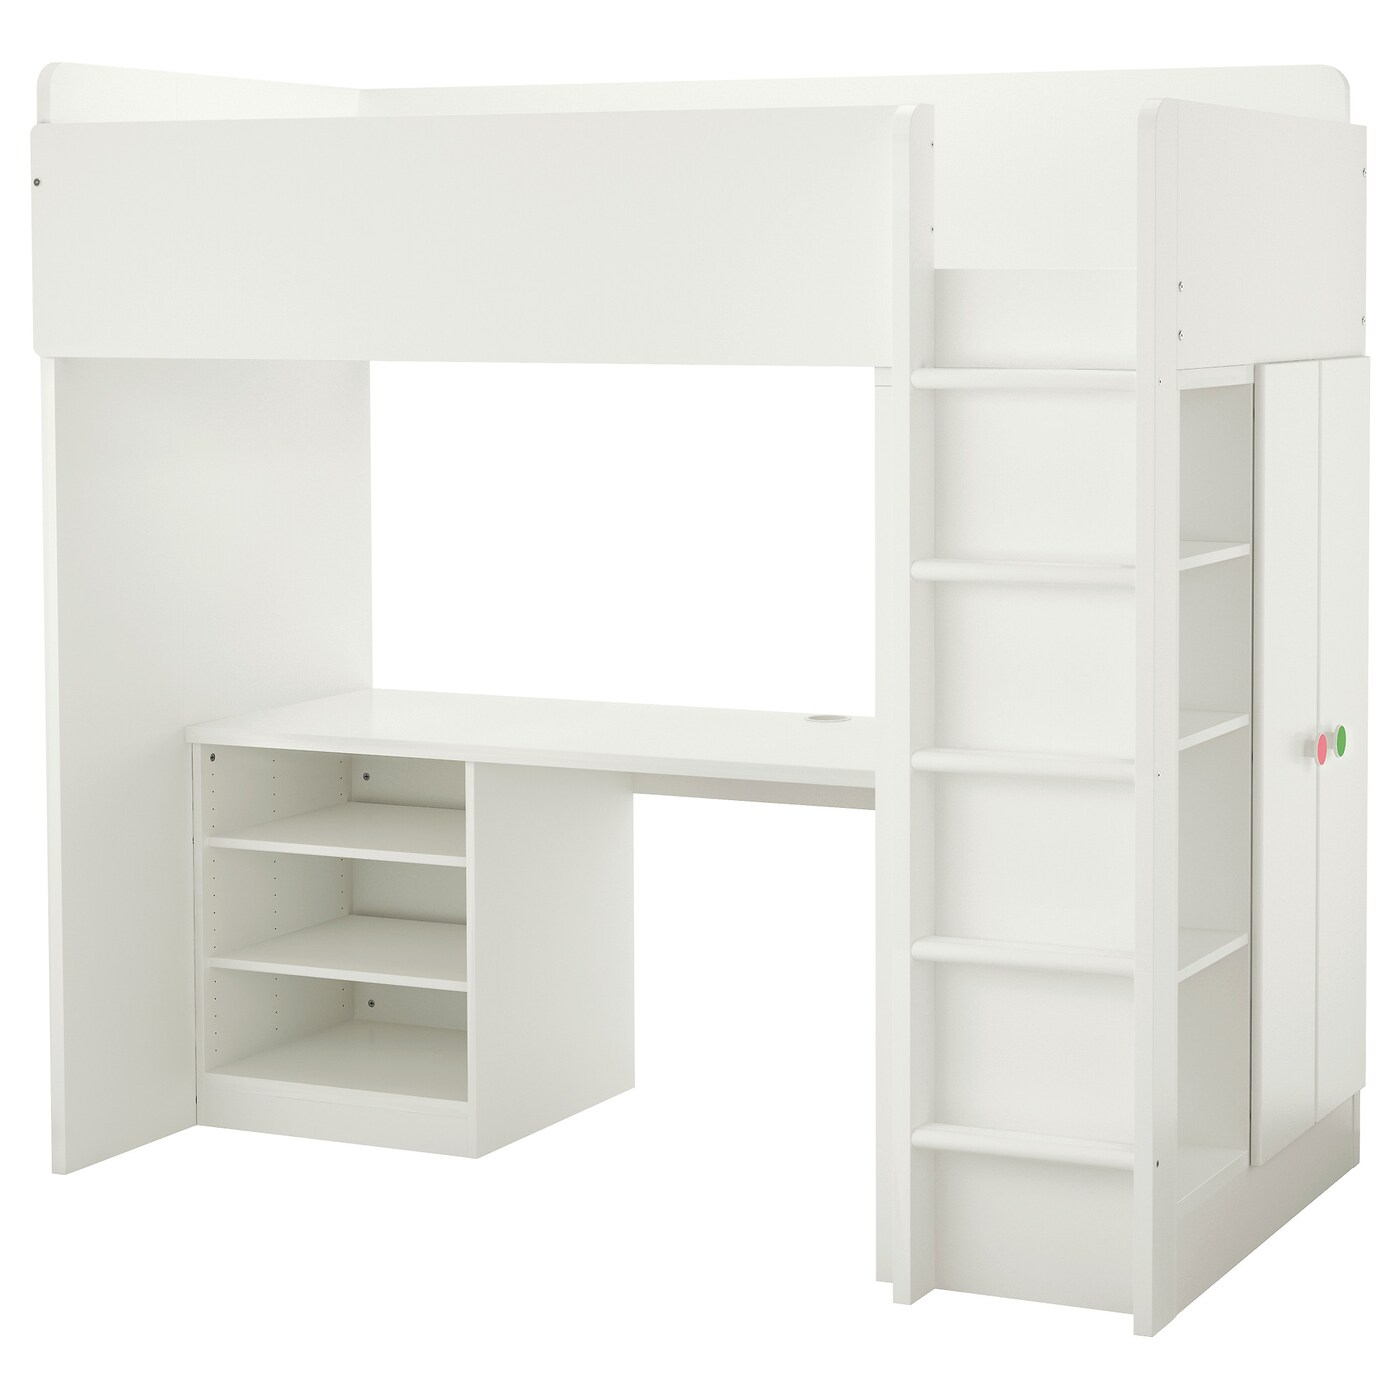 stuva f lja loft bed combo w 2 shelves 2 doors white 207x99x193 cm ikea. Black Bedroom Furniture Sets. Home Design Ideas